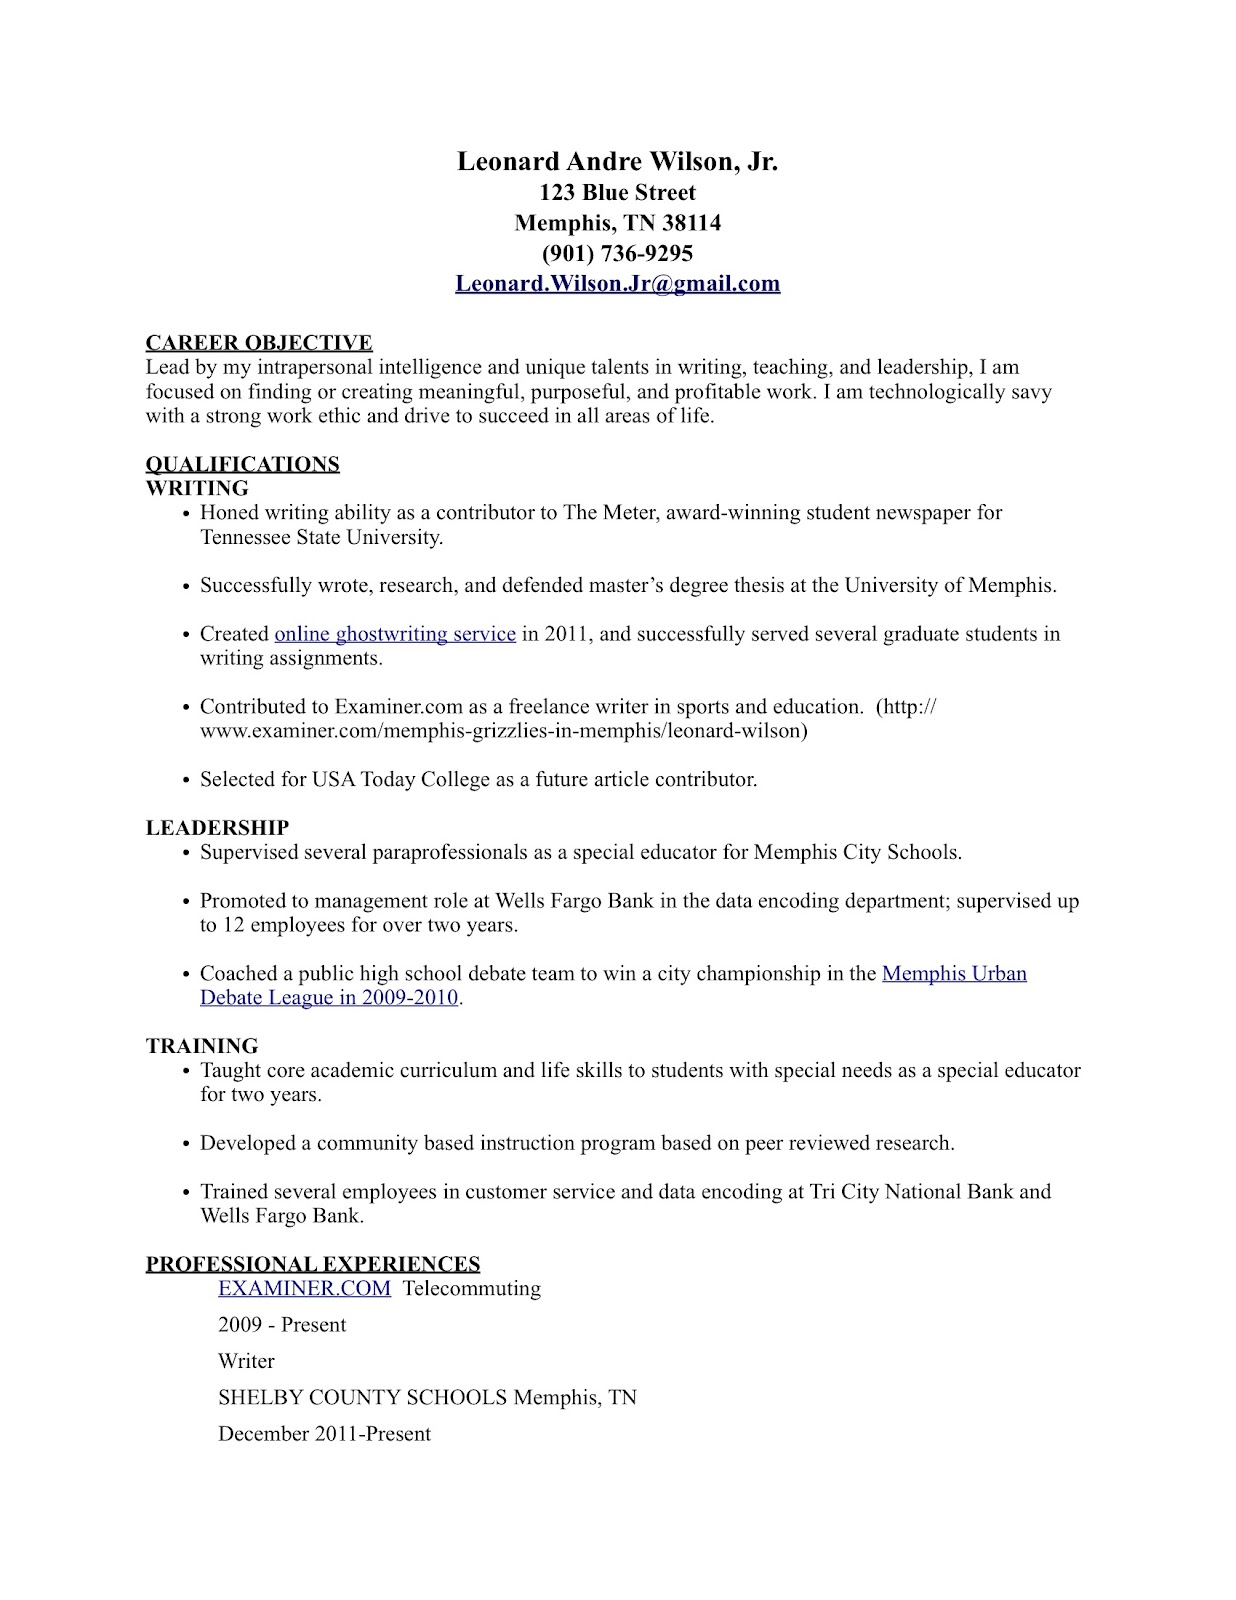 How To Write An Evaluation Essay Sample Online Free Homework  Professional Interests For Resume